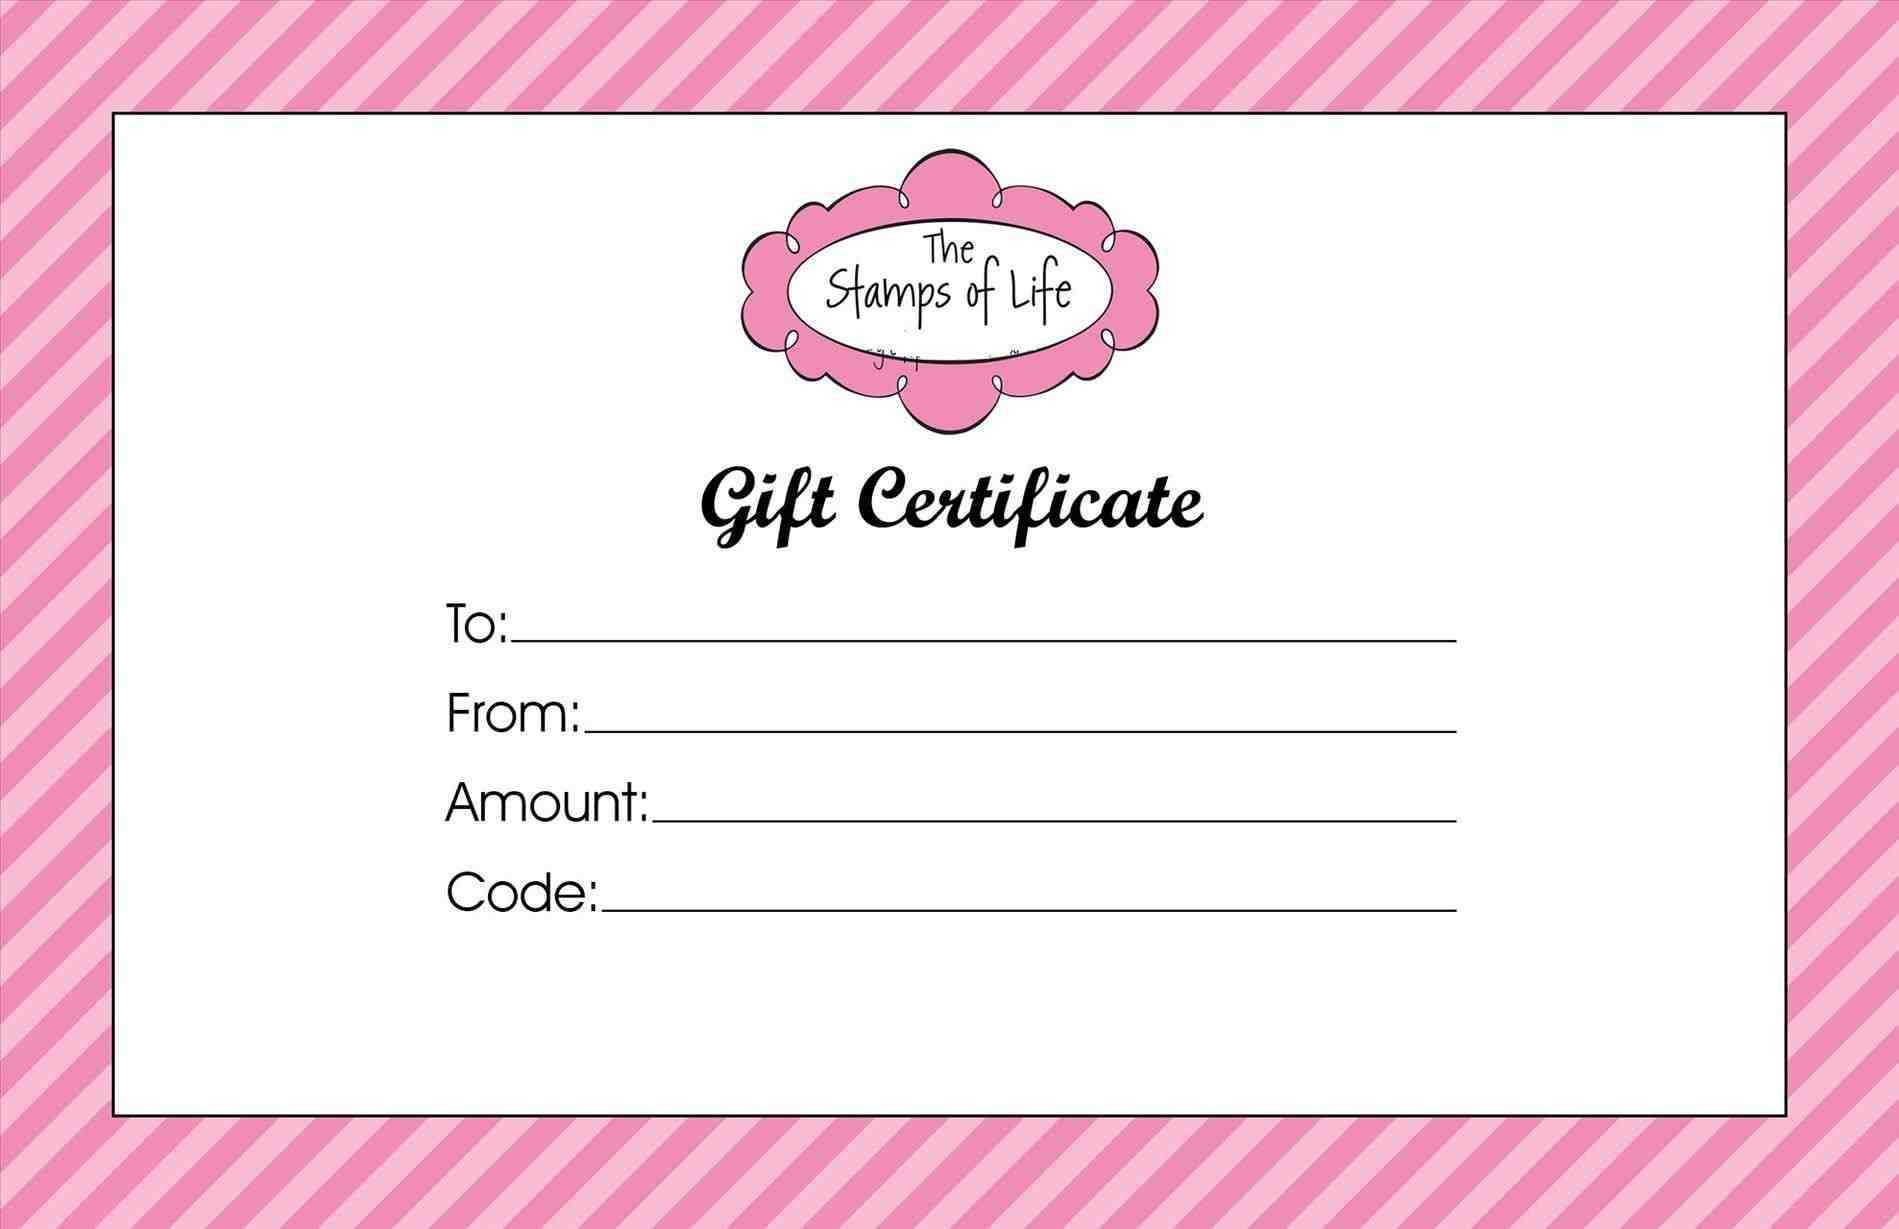 Clipart Gift Certificate Template For Tattoo Gift Certificate Template